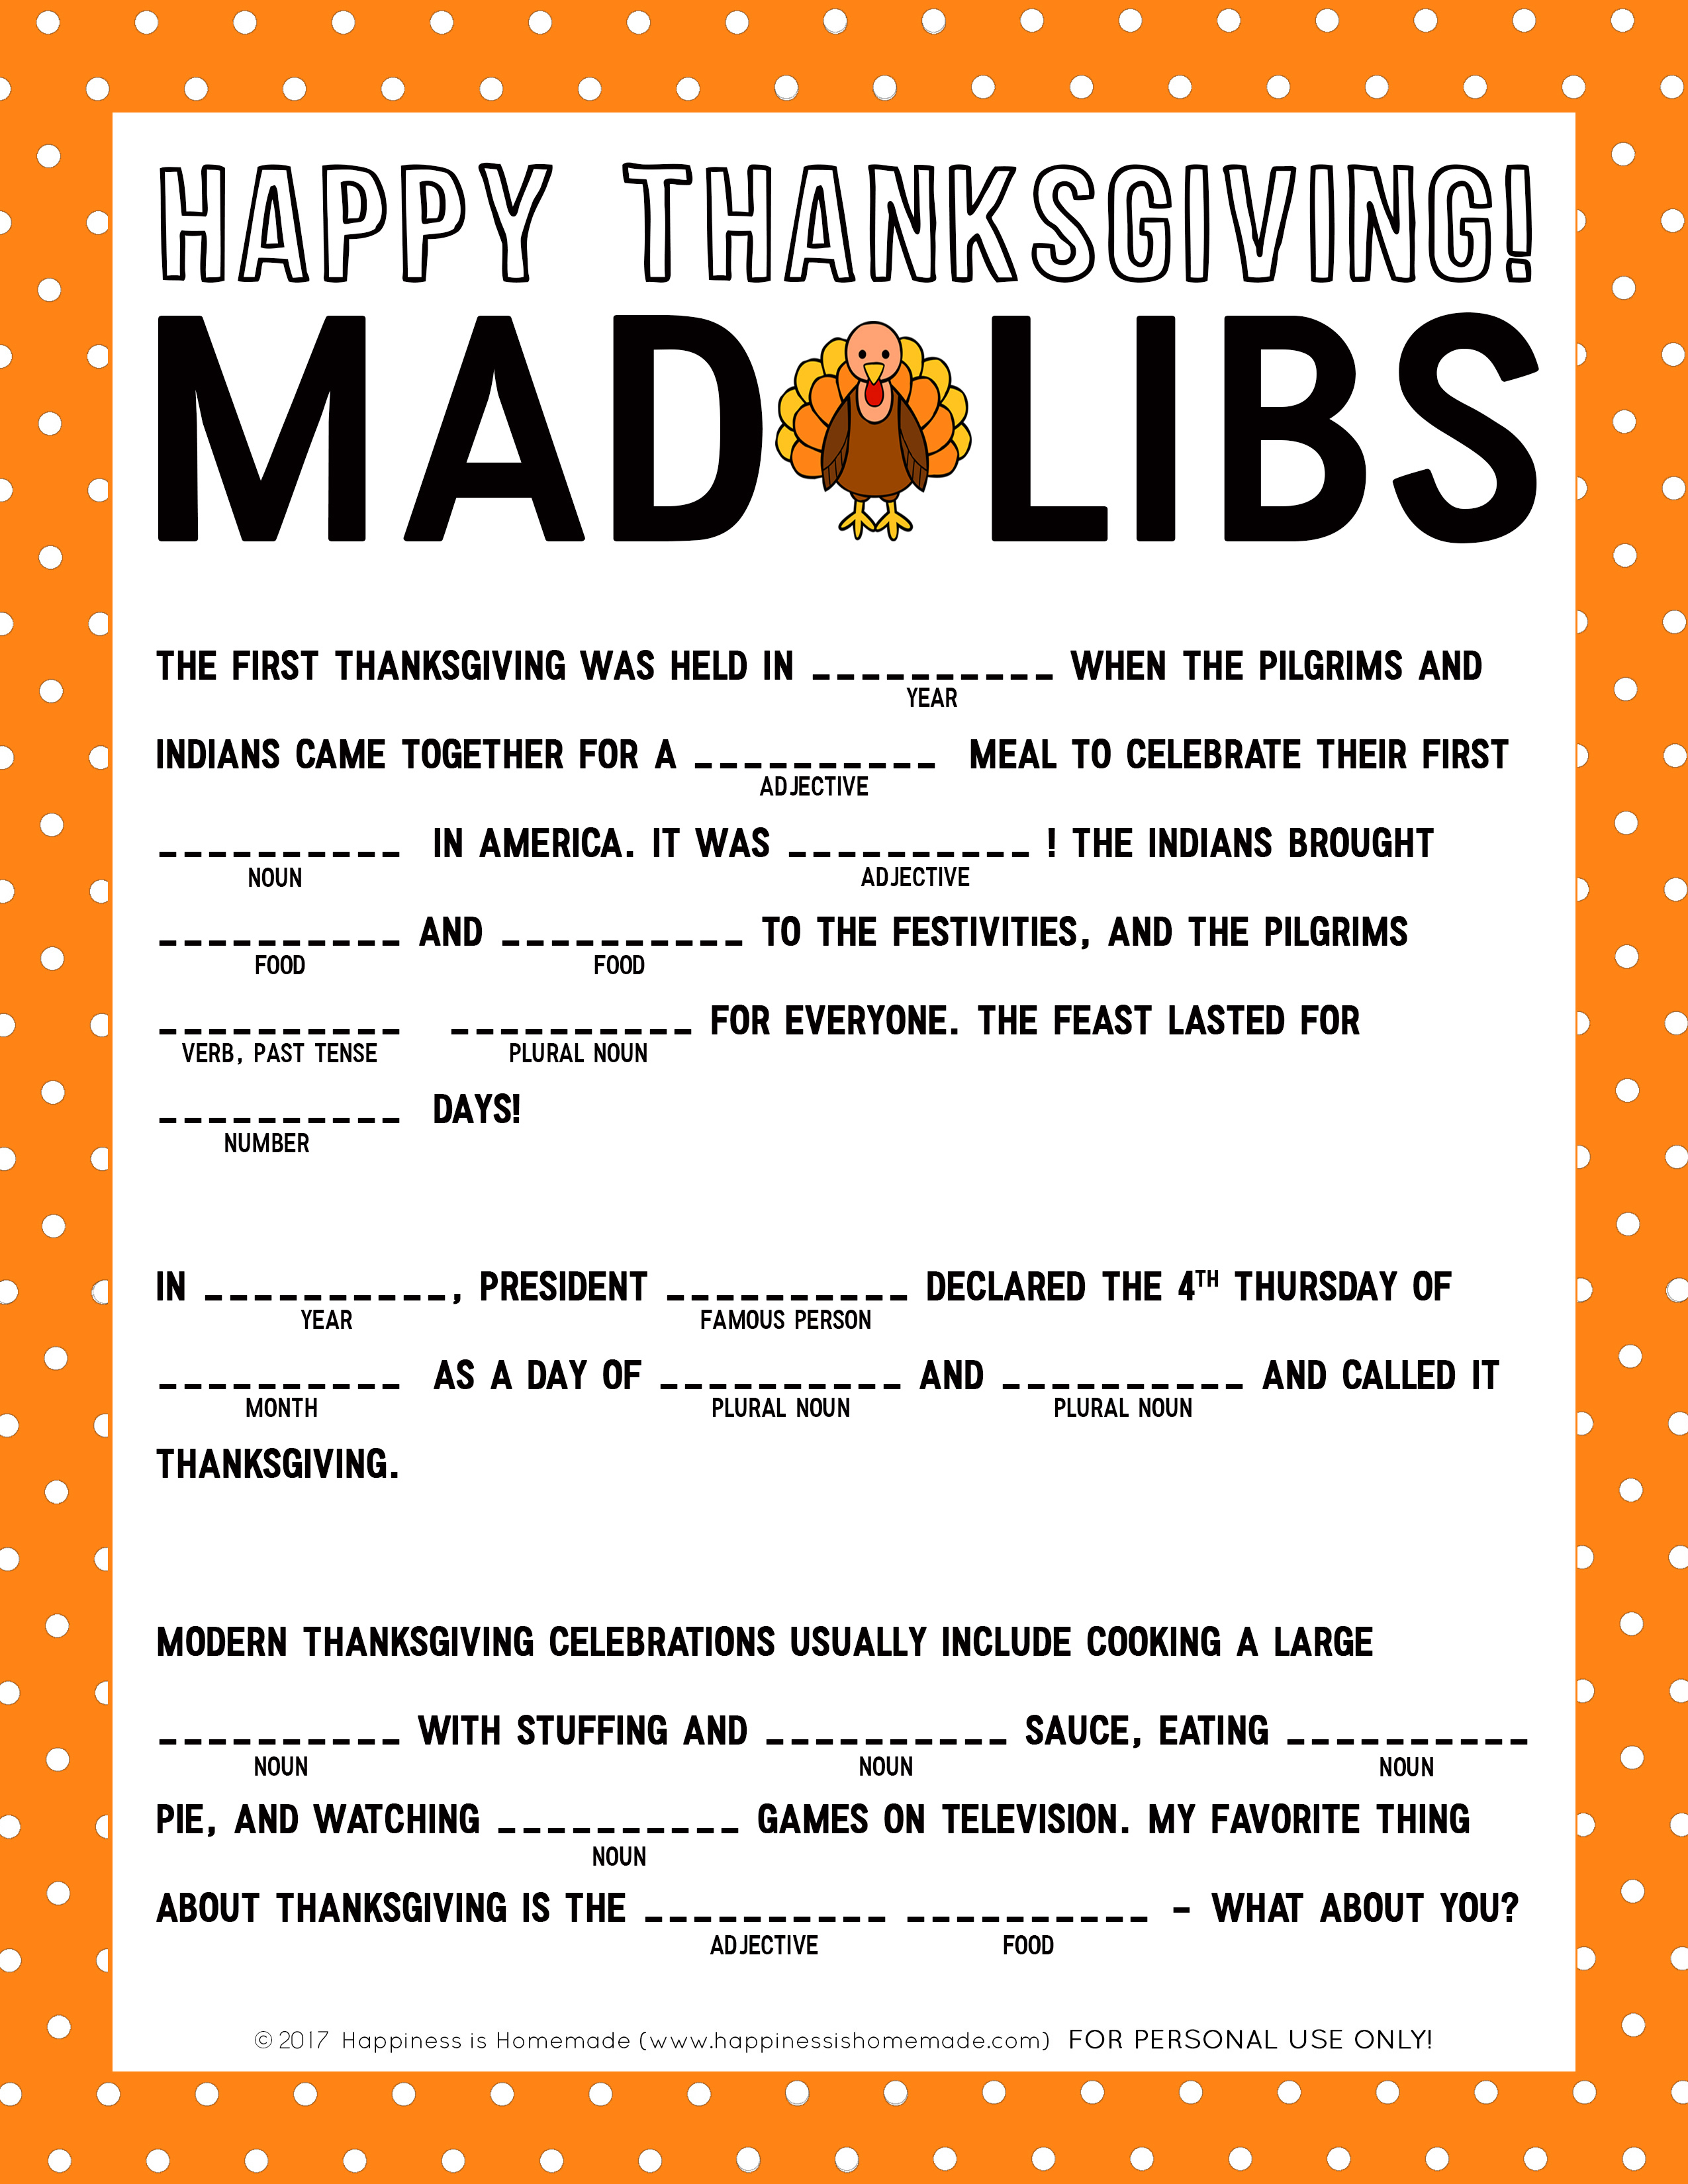 Thanksgiving Mad Libs Printable Game - Happiness Is Homemade - Thanksgiving Games Printable Free